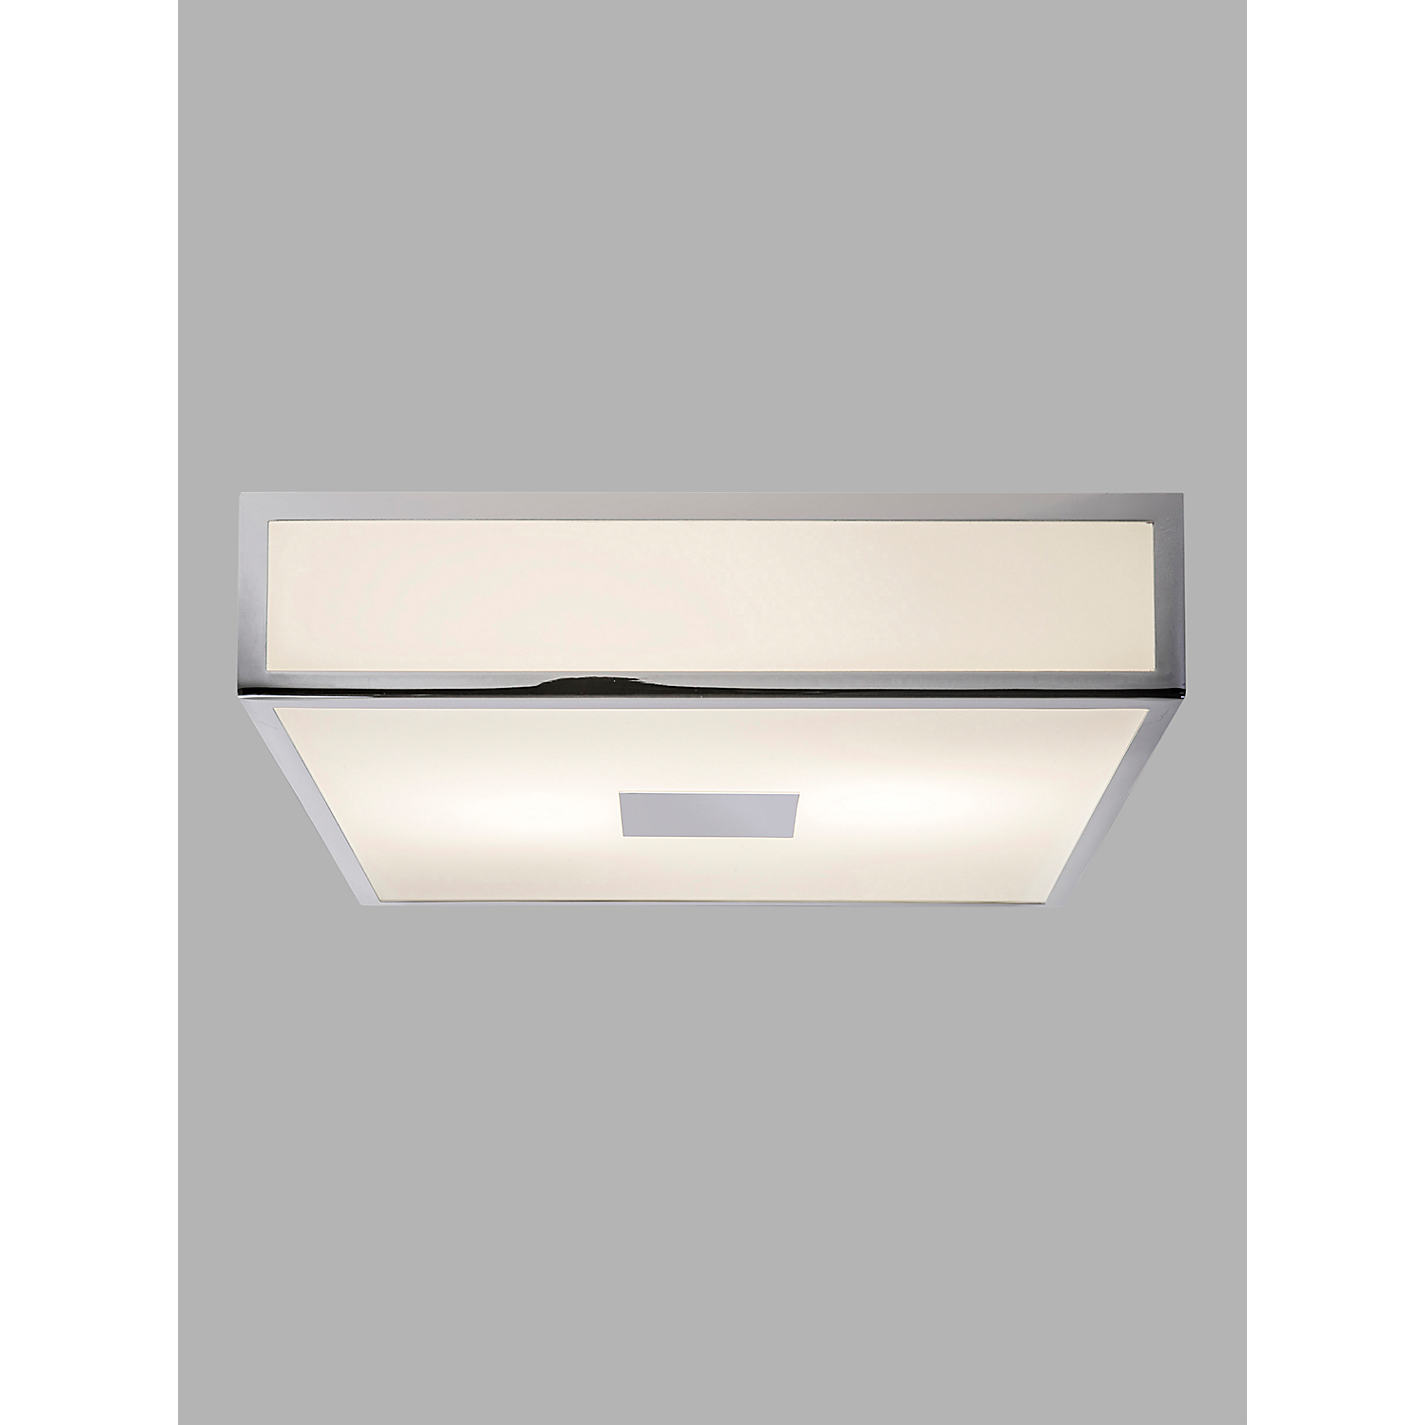 Bathroom Lights John Lewis buy astro mashiko bathroom light | john lewis